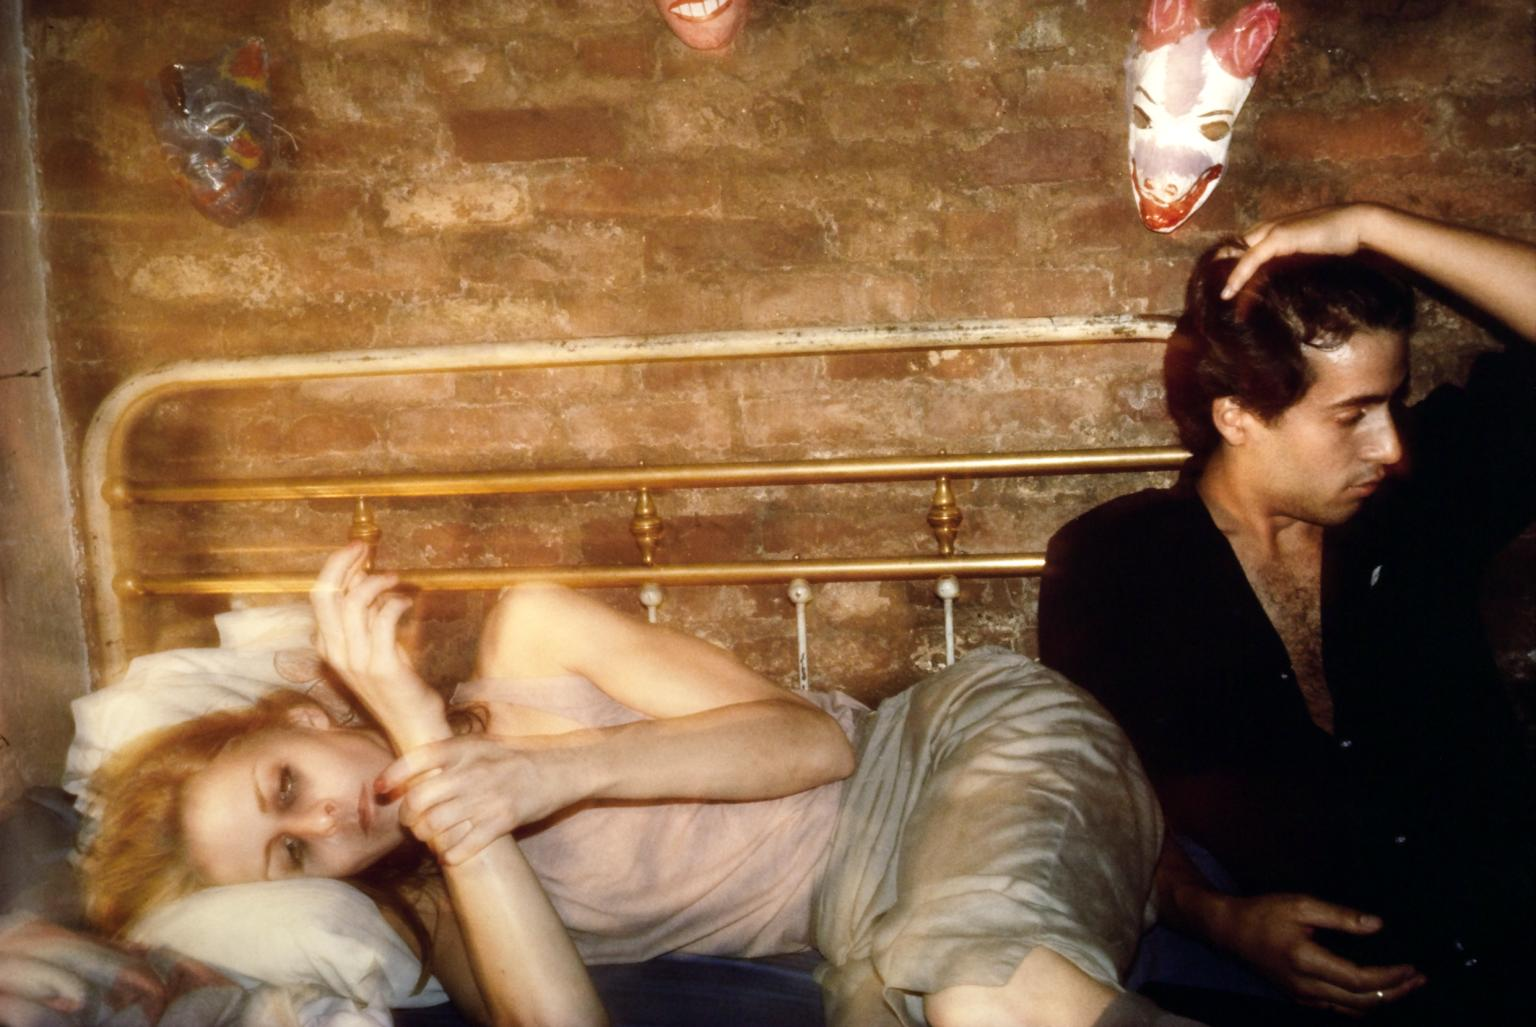 Nan Goldin, Greer and Robert on the bed, NYC (1982) was Alycia's assignment art work.